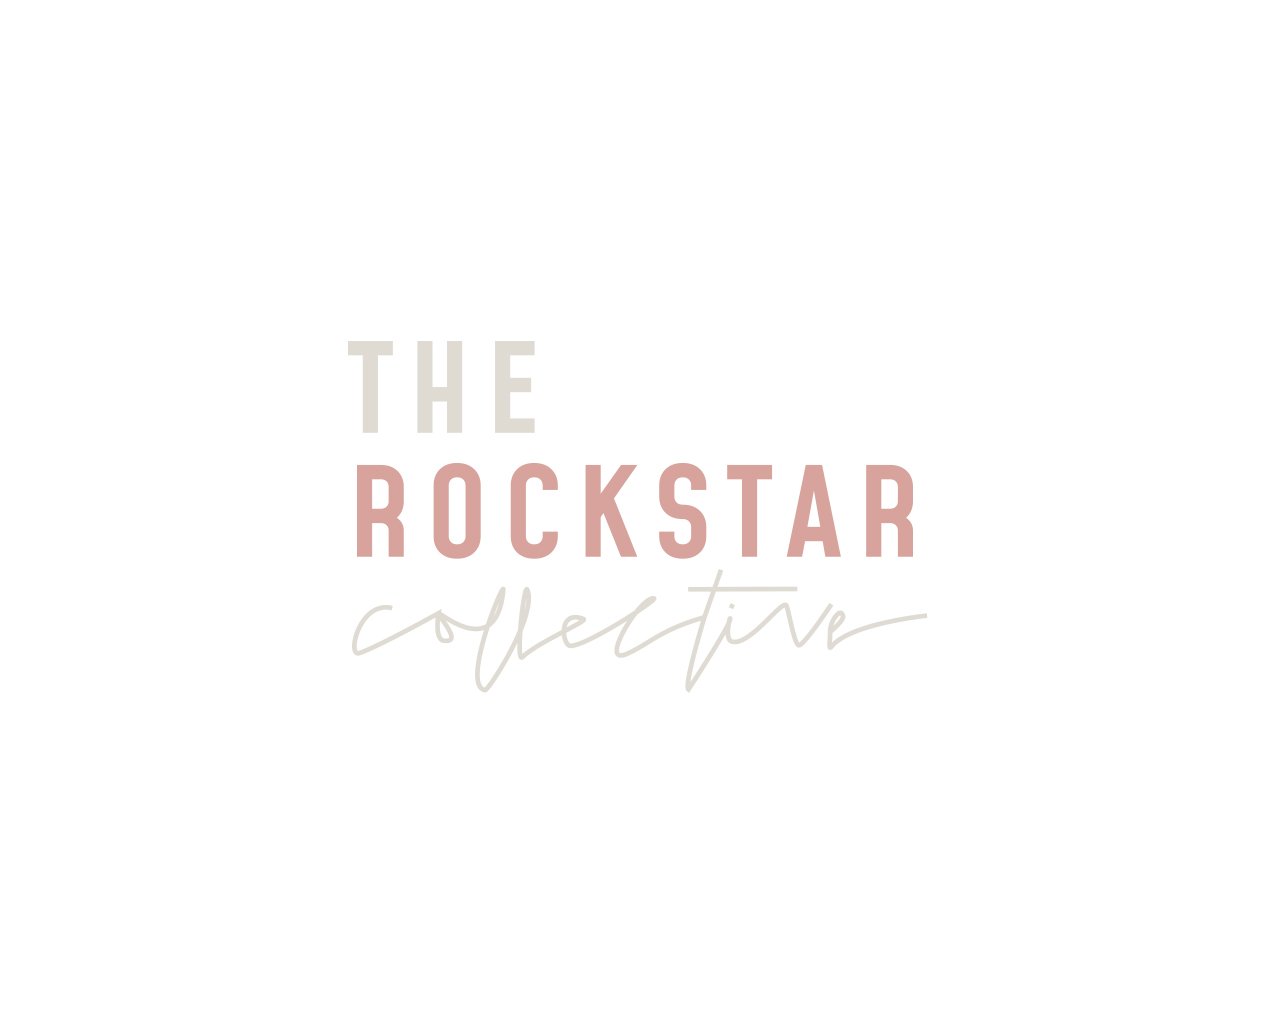 The Rockstar Collective